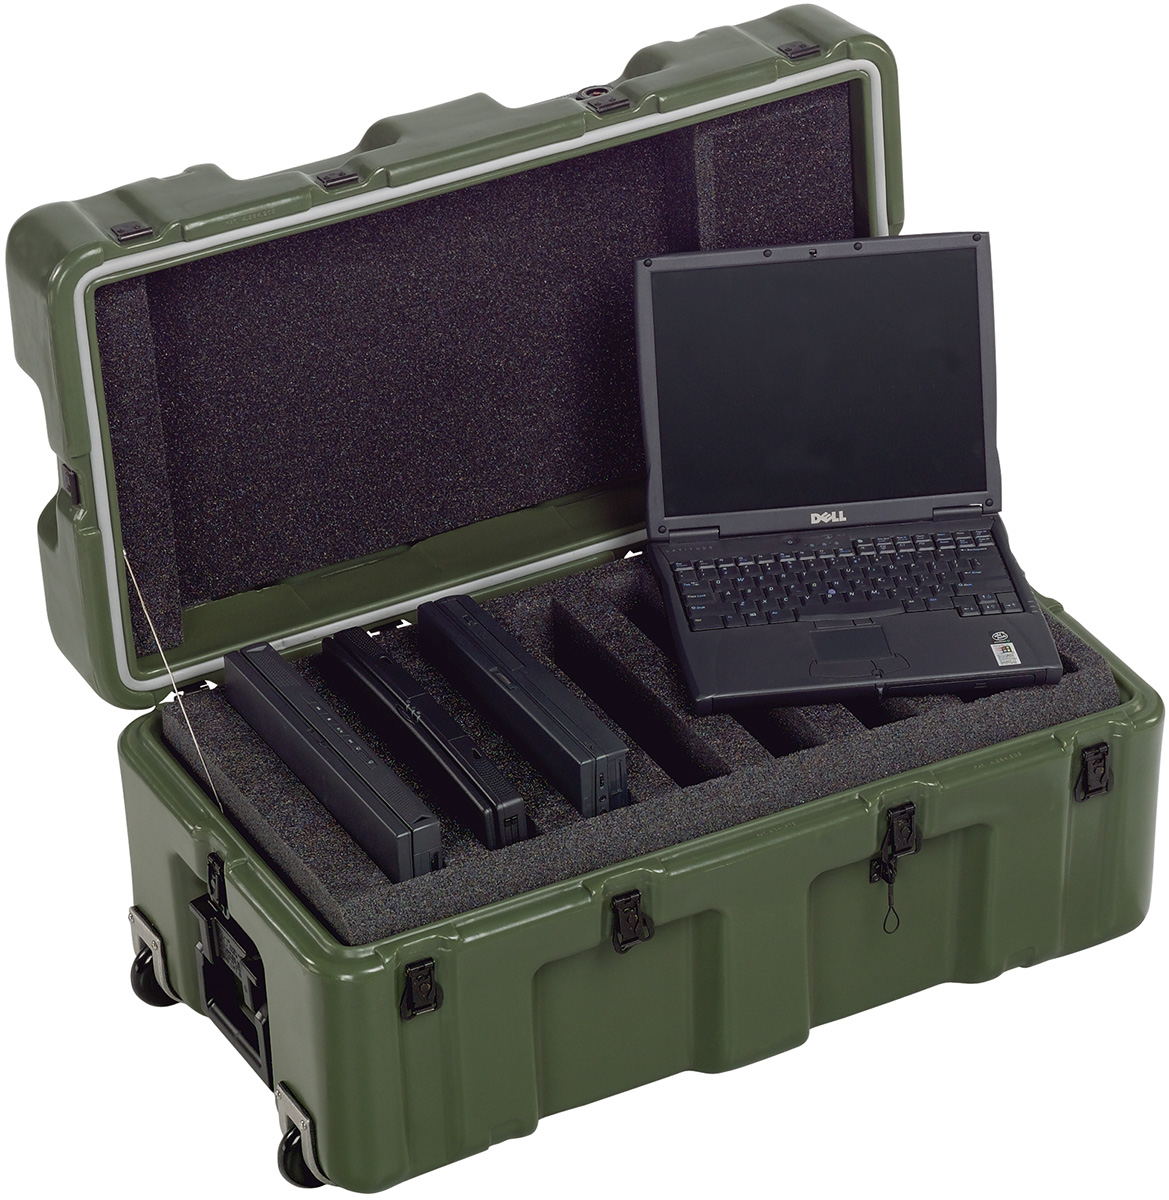 pelican peli products 472 6 LAPTOP military laptop transport case